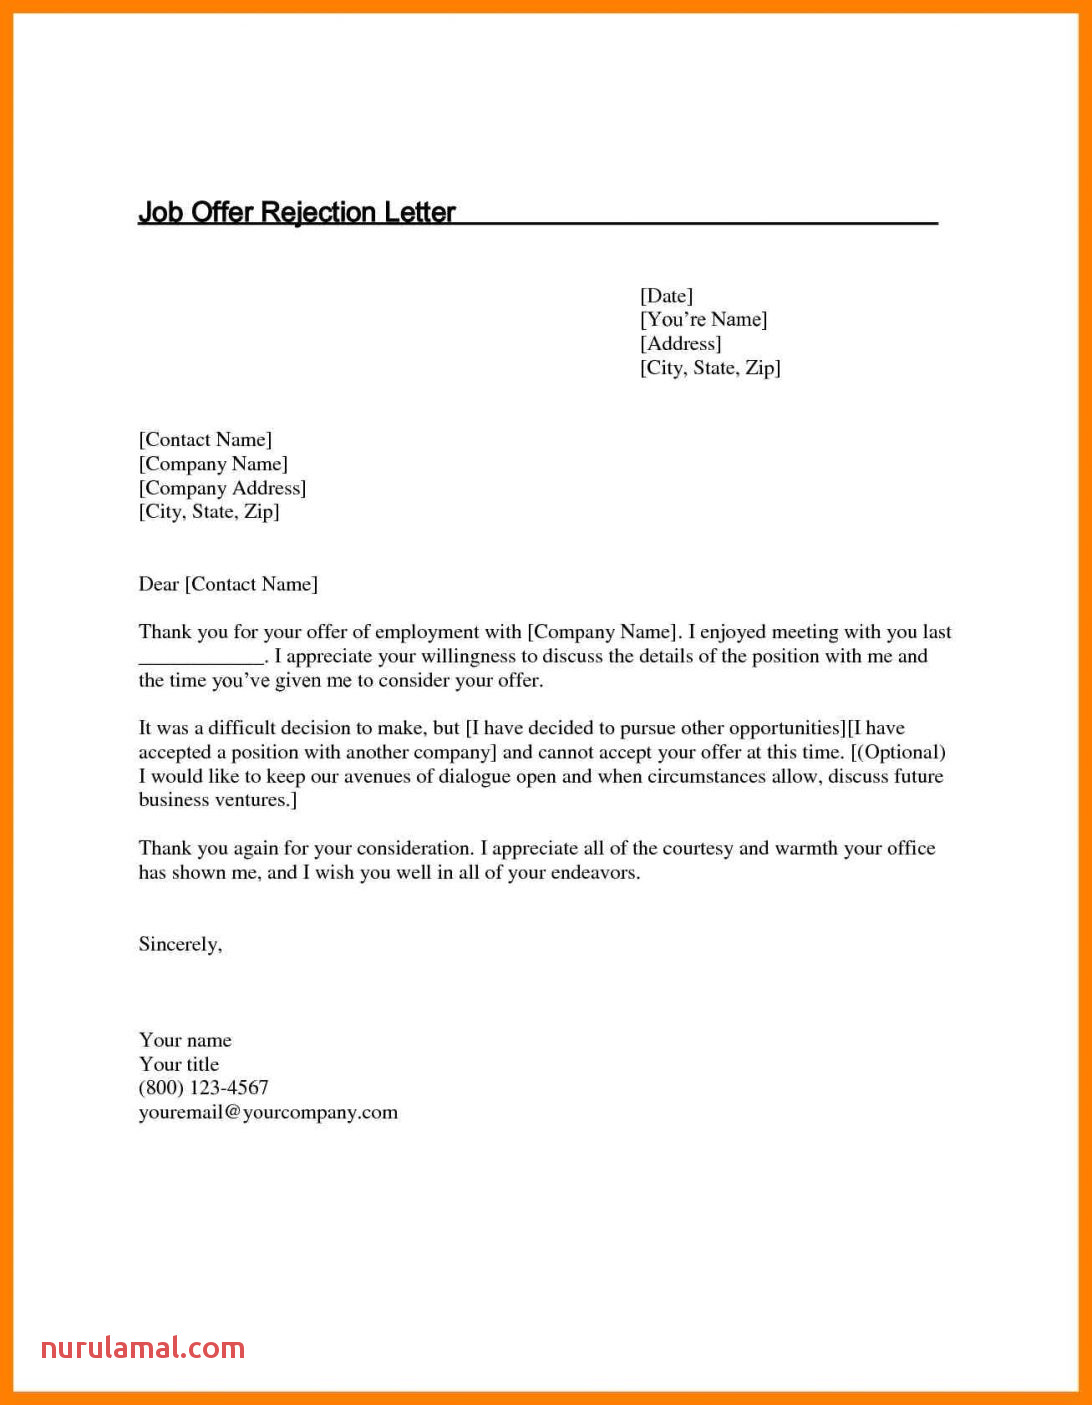 12 accepting job offer email sample time table chart letter 1092x1405